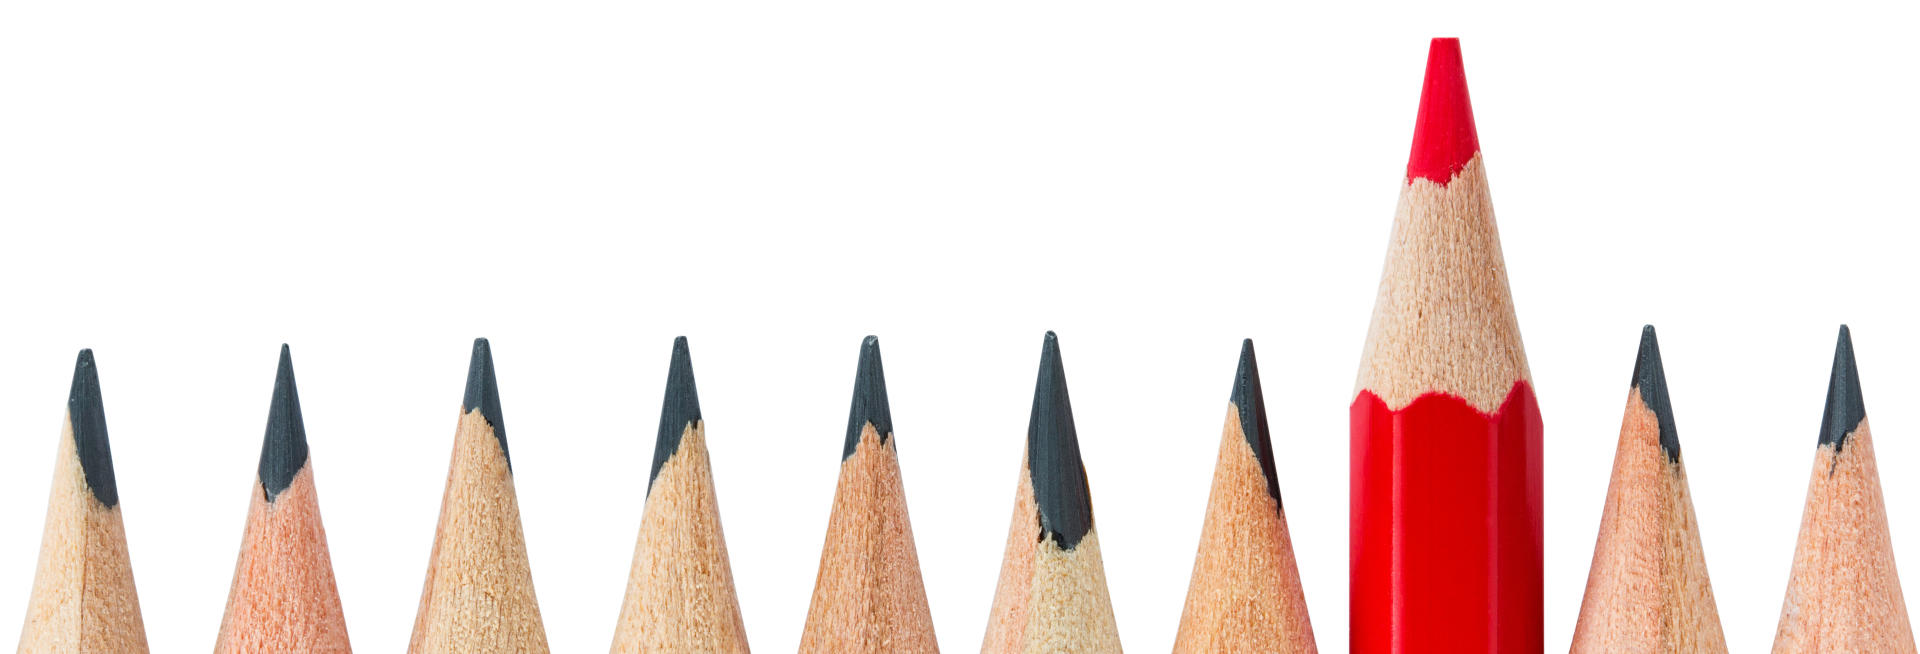 pencils aligned in a row and a red colored pencil sticking out of the row